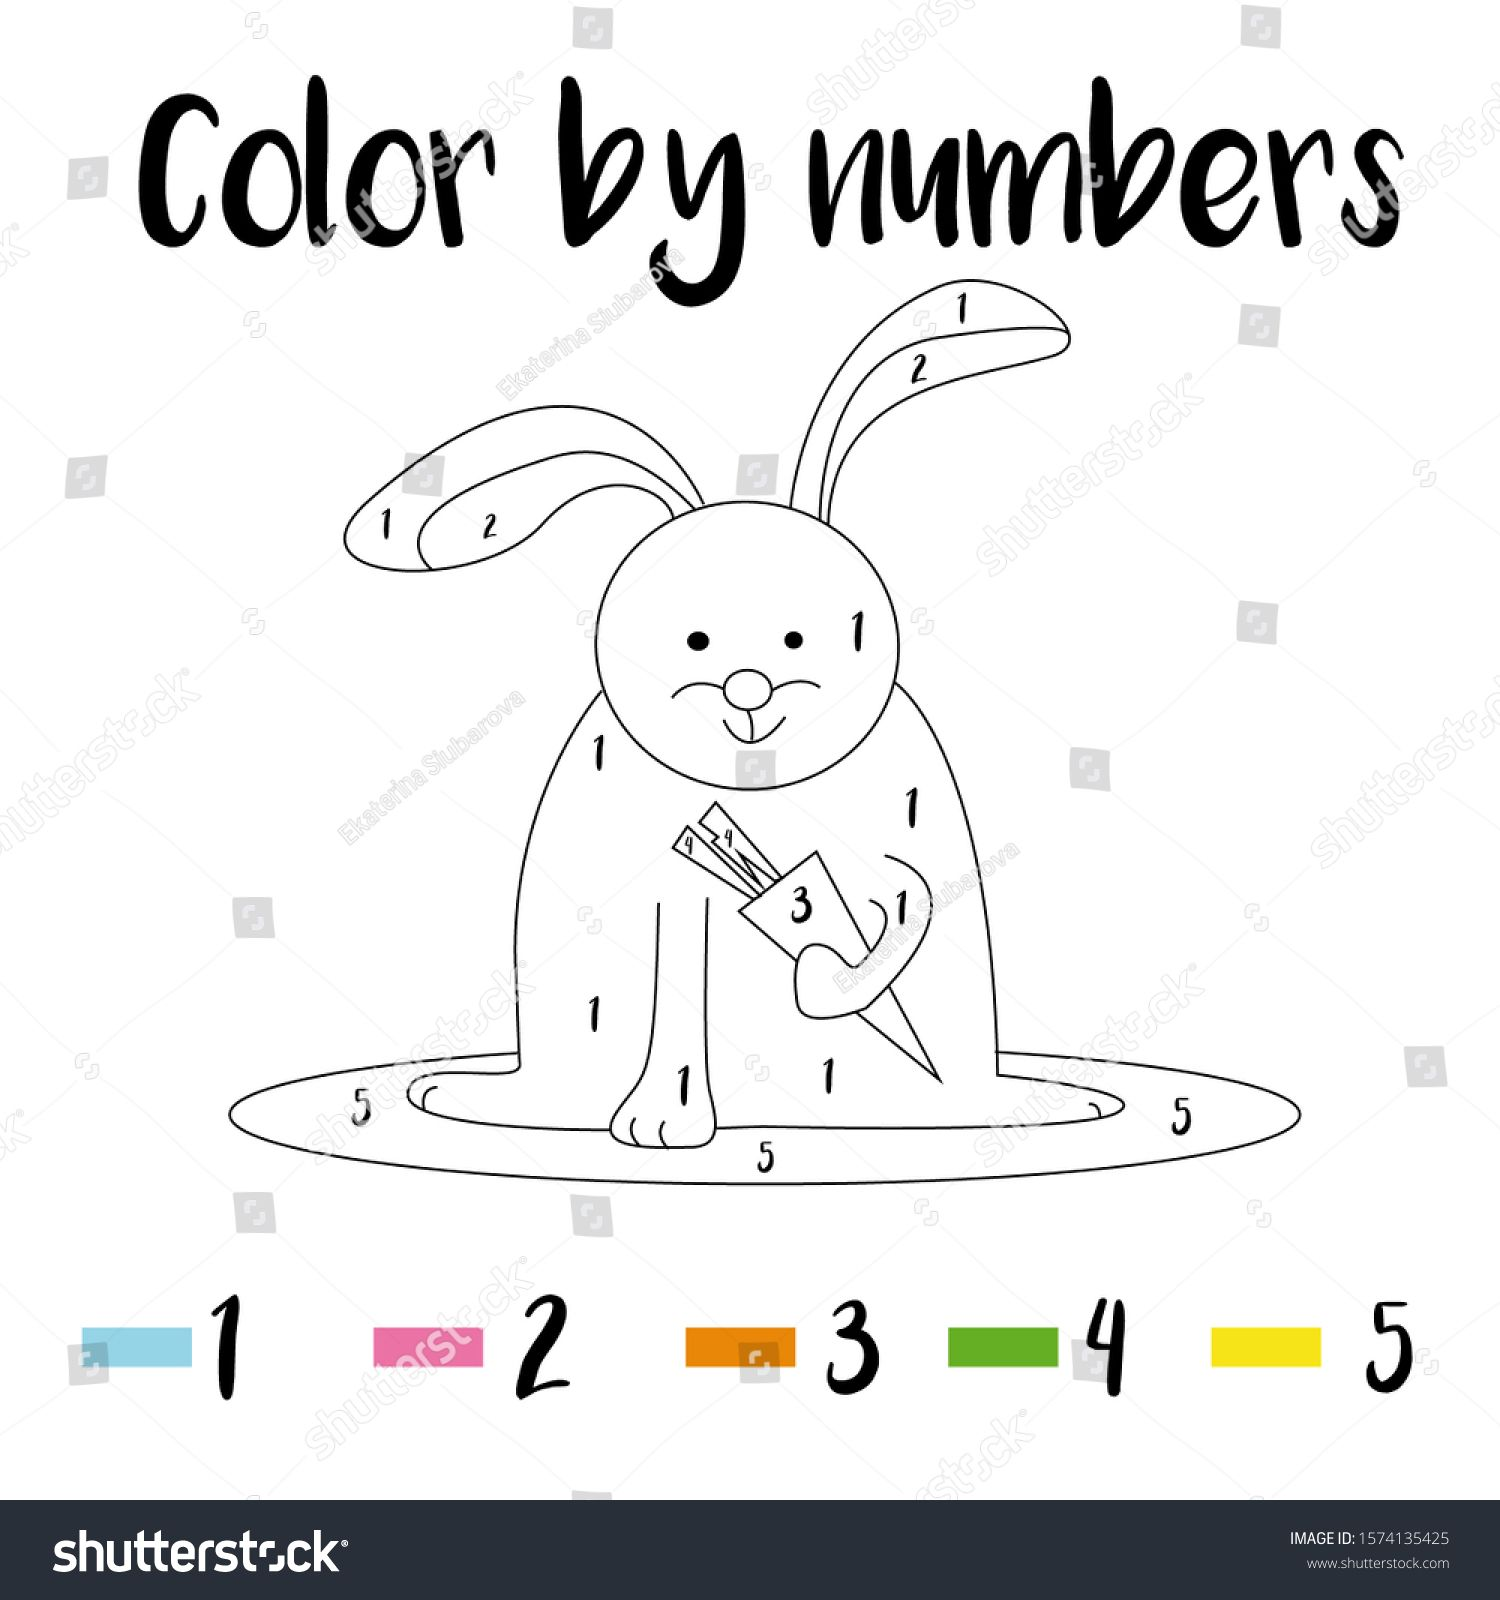 Preschool Counting Activities Drawing Of A Rabbit With A